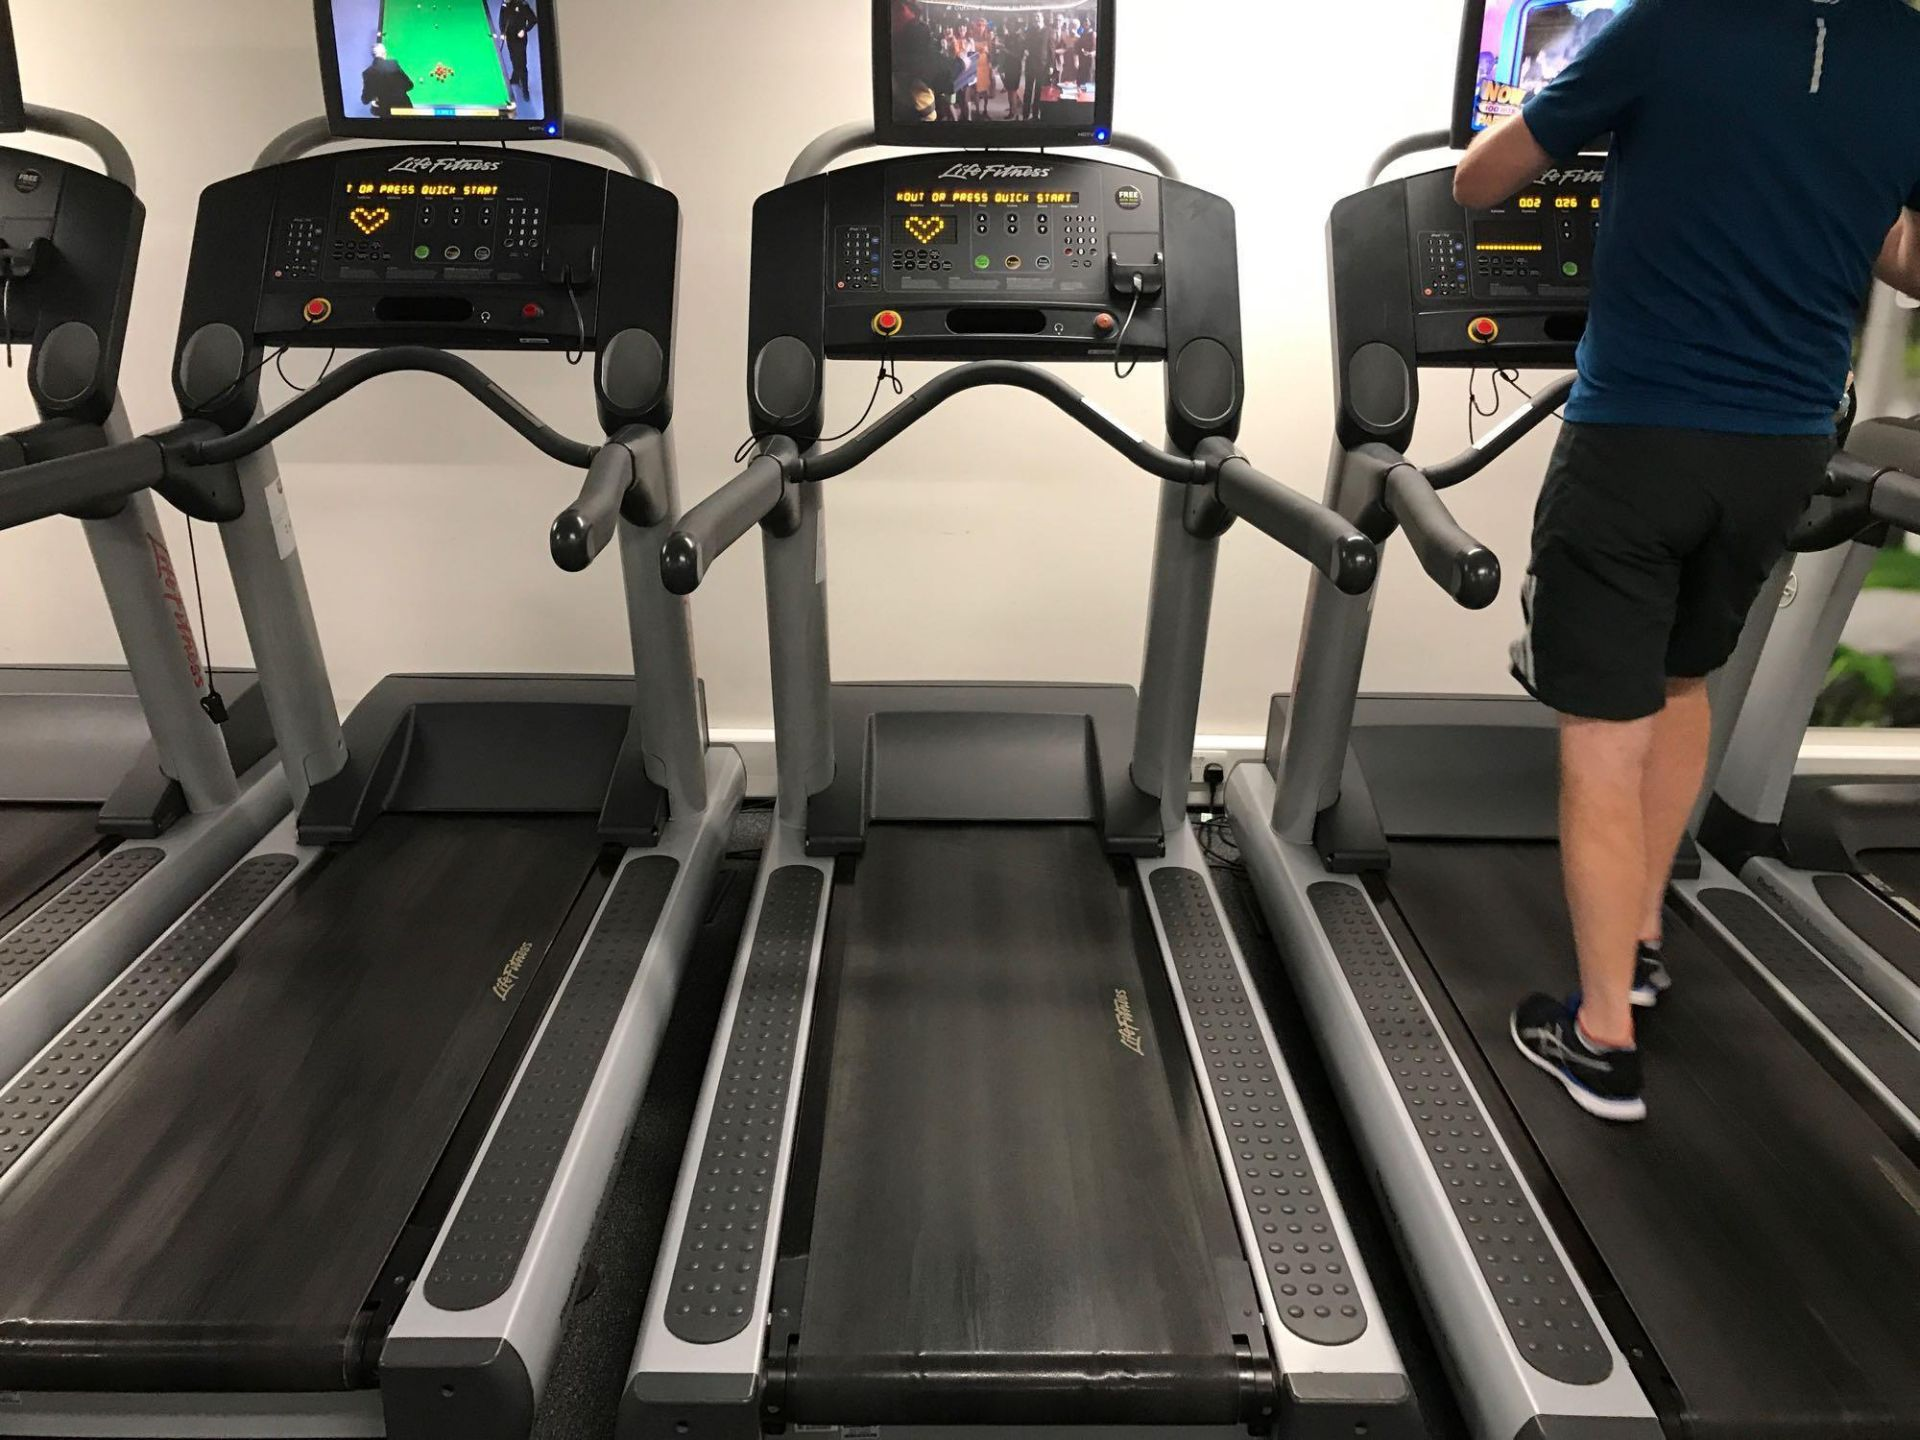 Lot 19 - x1 Life fitness treadmill